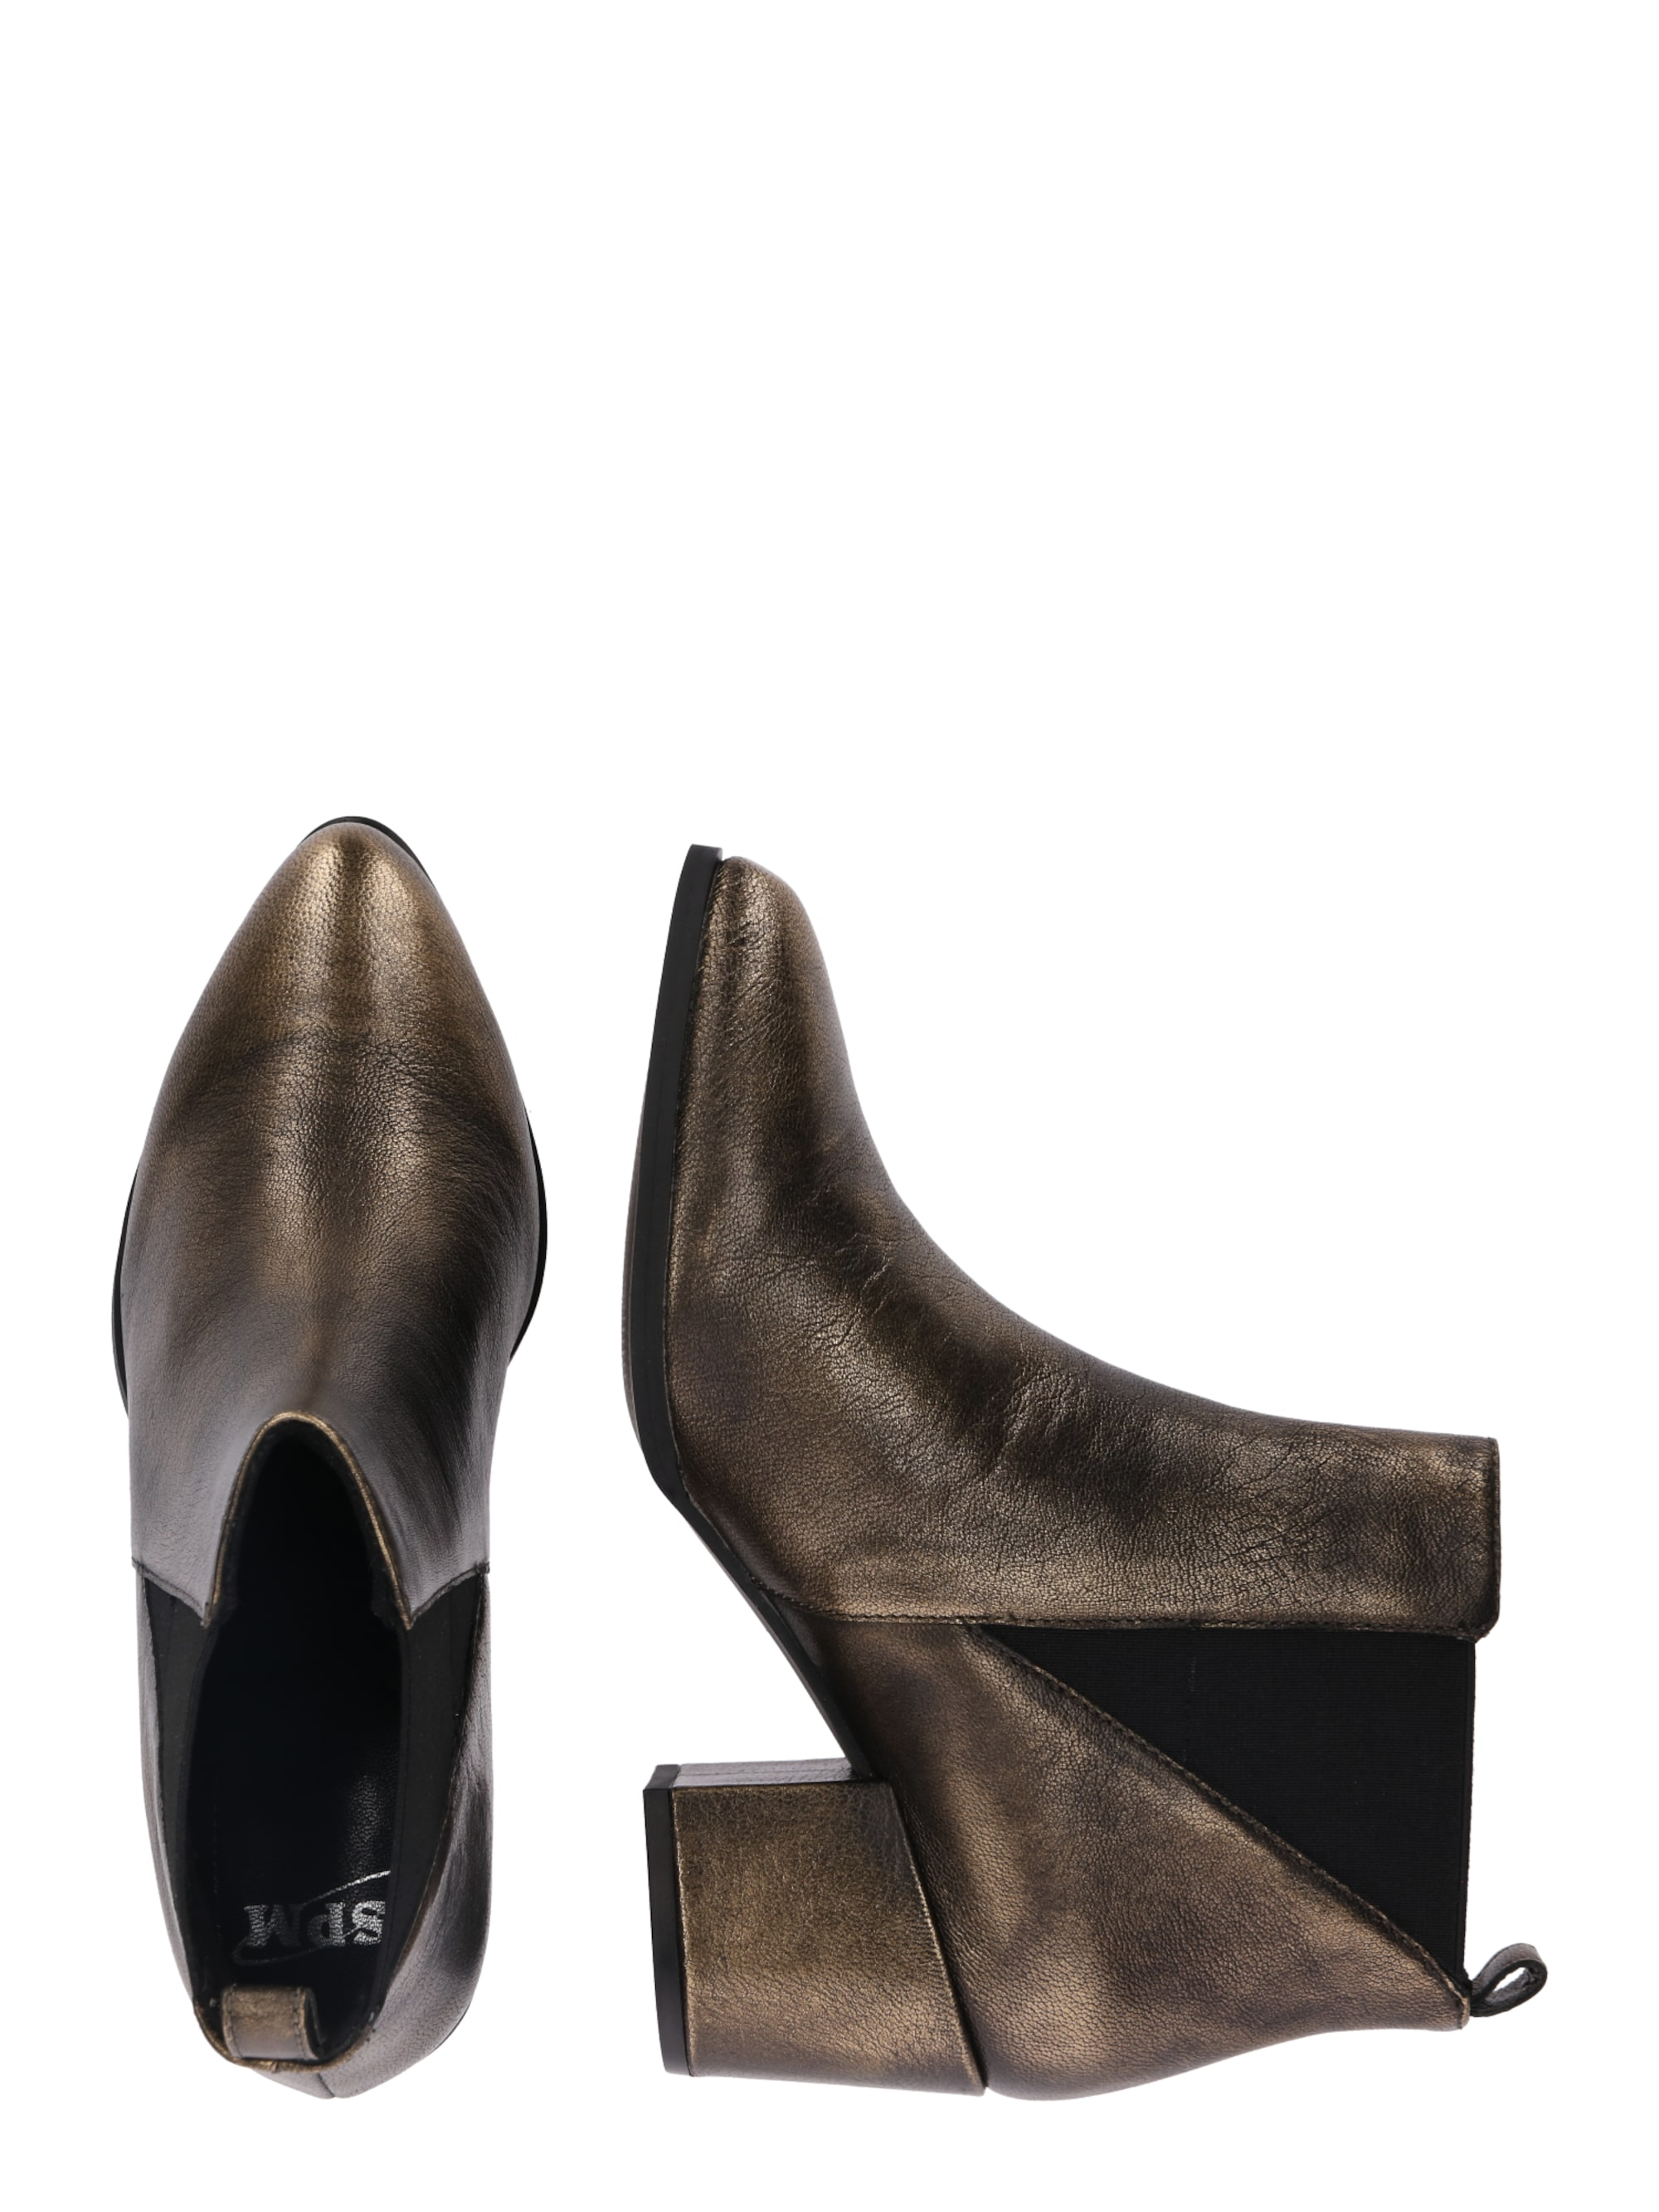 Chelsea boots 'Nelsea'